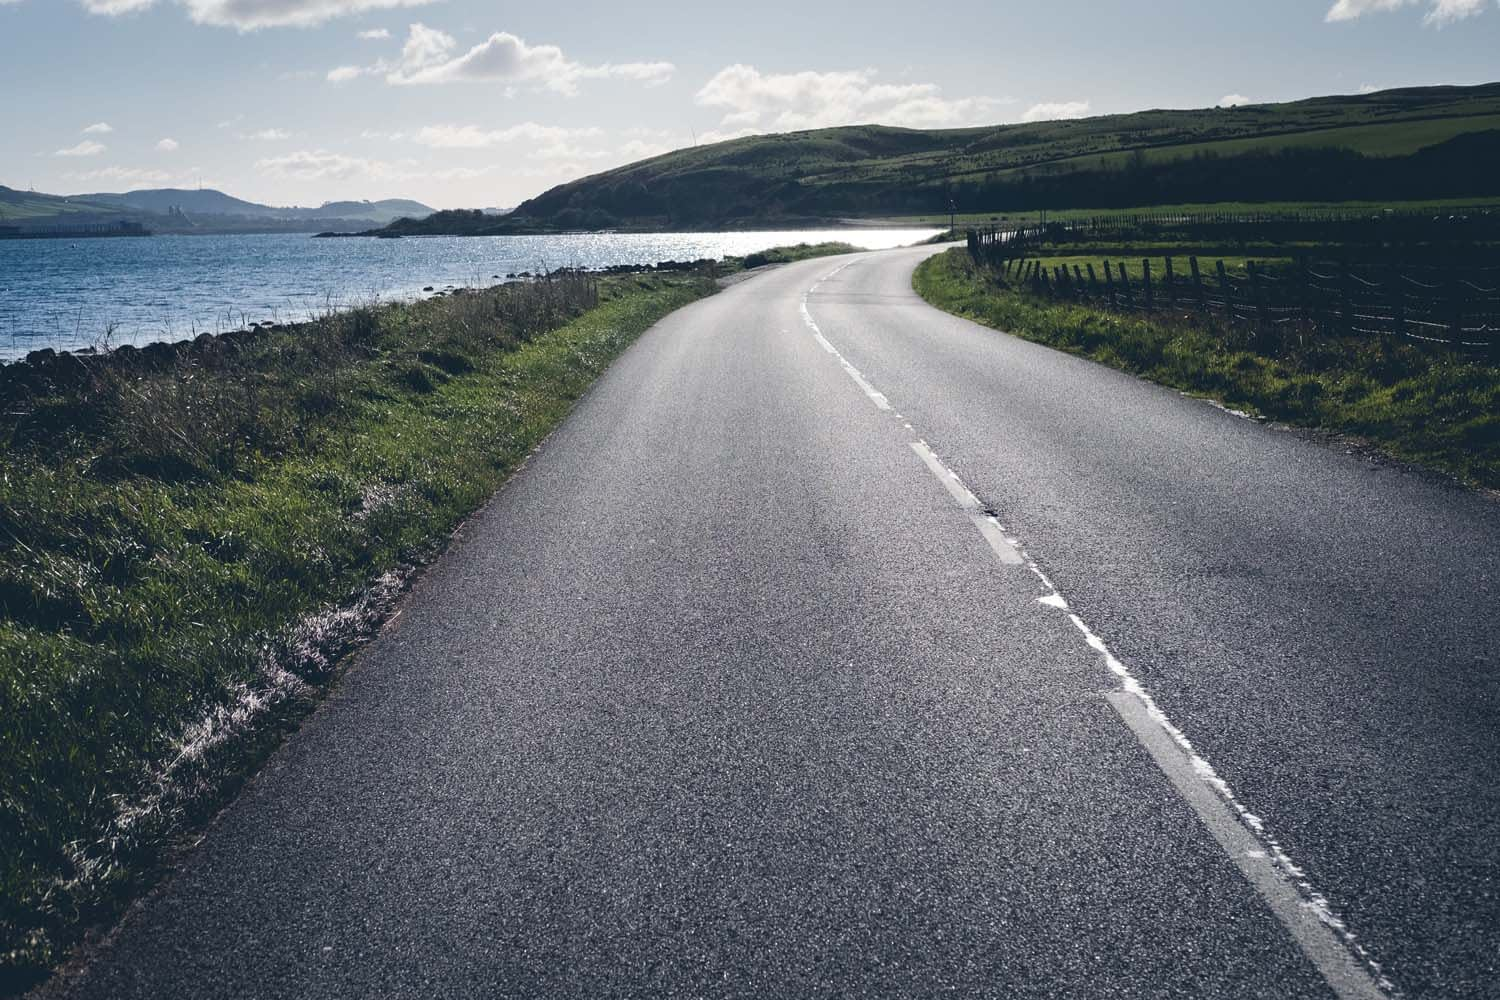 The cycling roads in Scotland are perfect